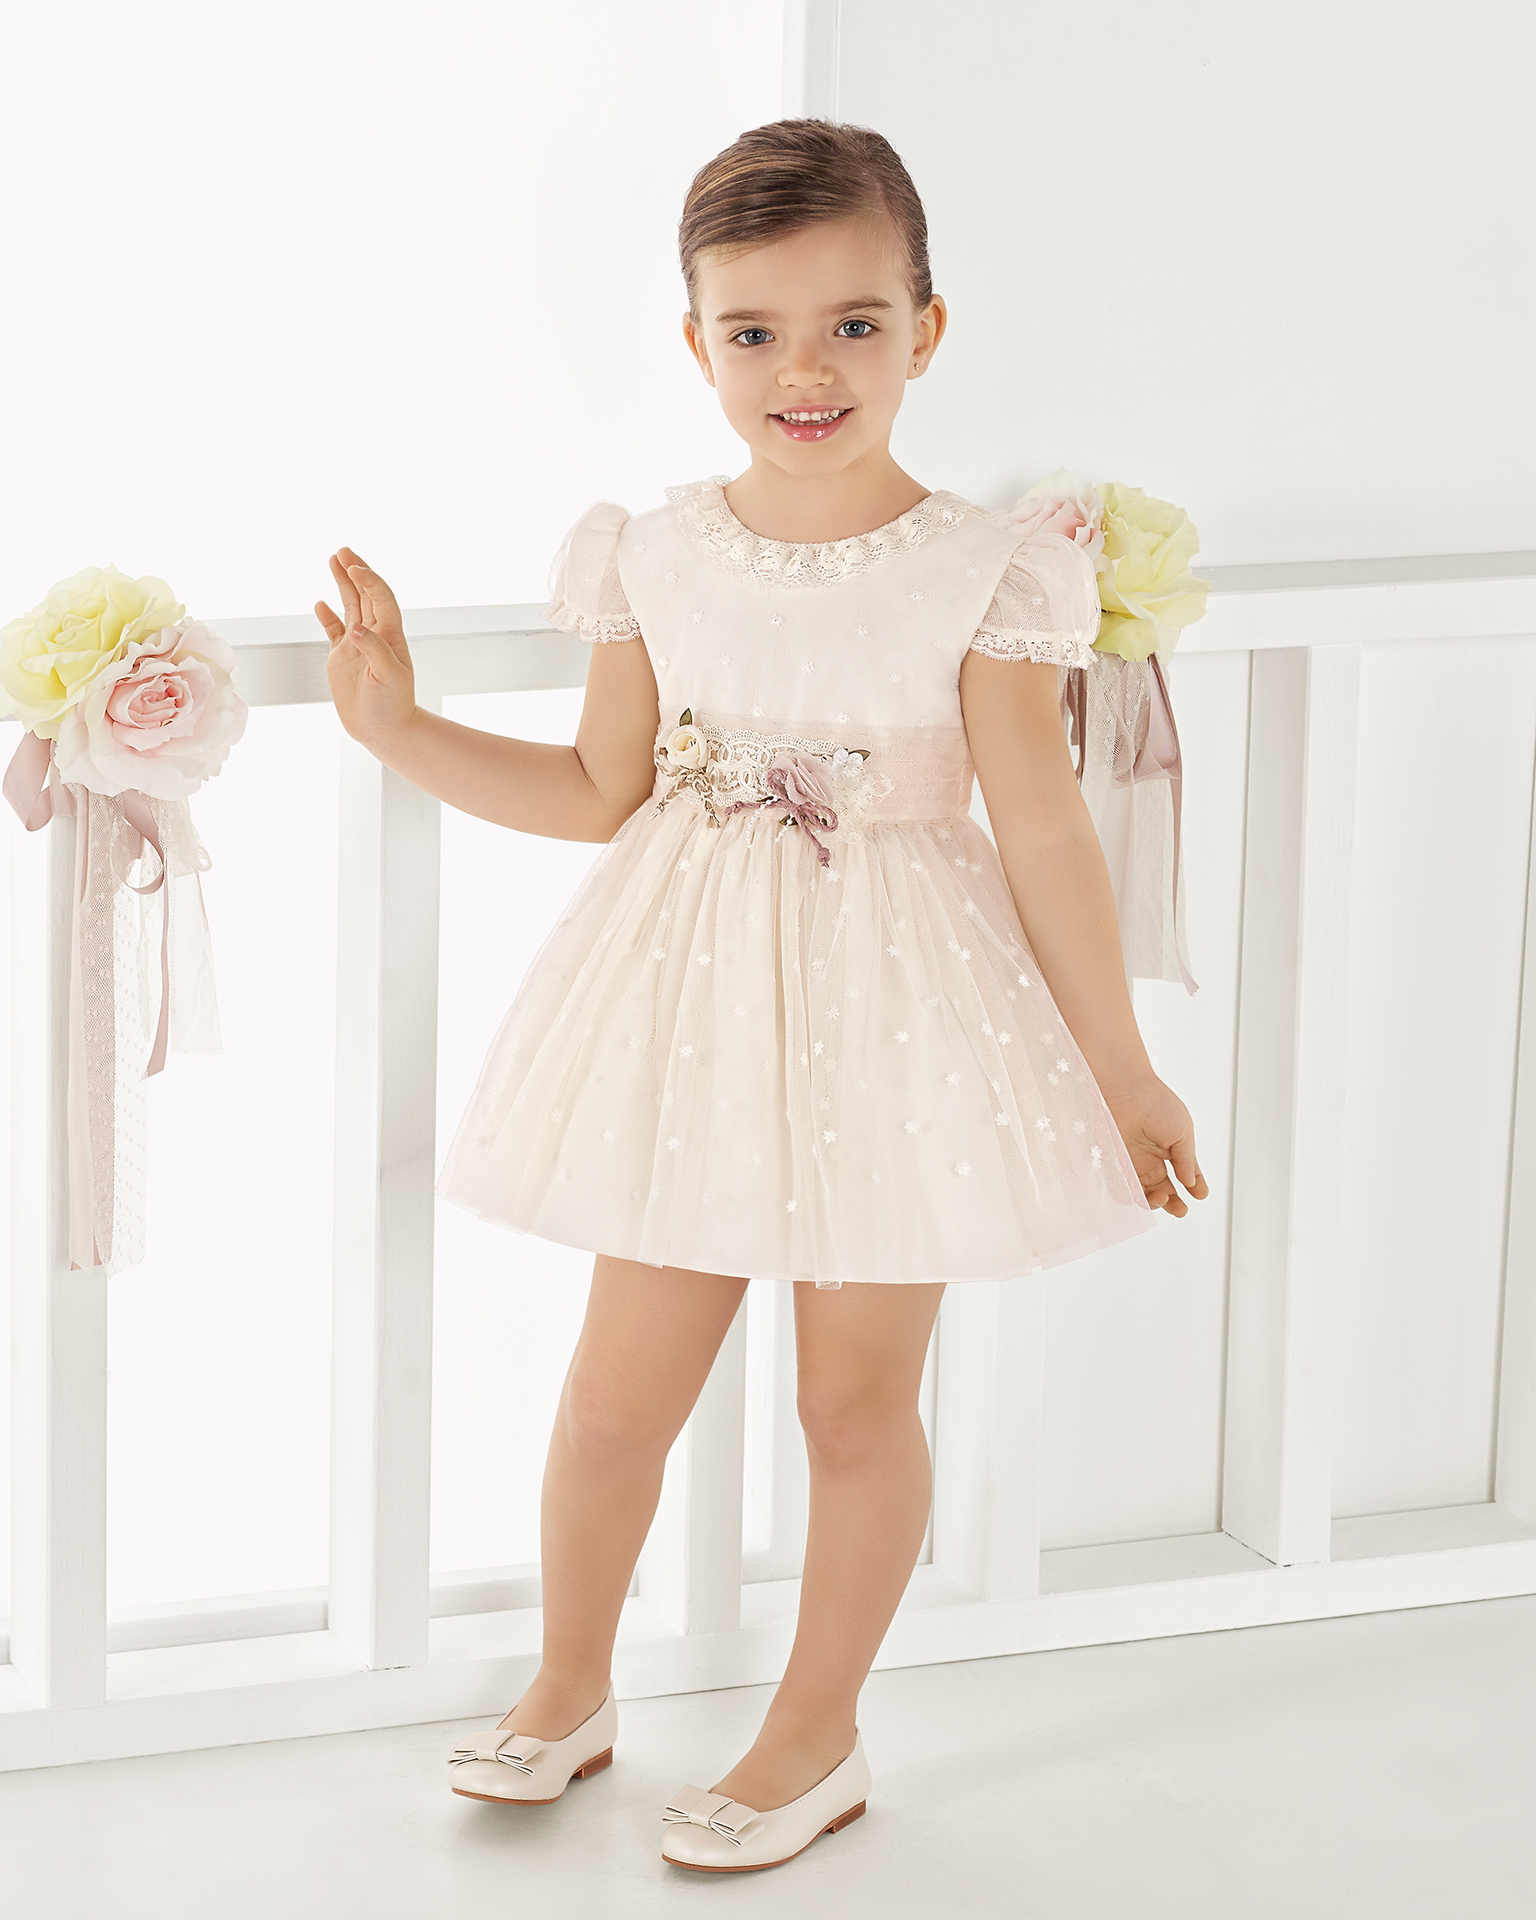 Princess-style embroidered tulle First Communion or bridesmaid's dress, in ivory/salmon or ivory. 2018 AIRE COMUNION Collection.